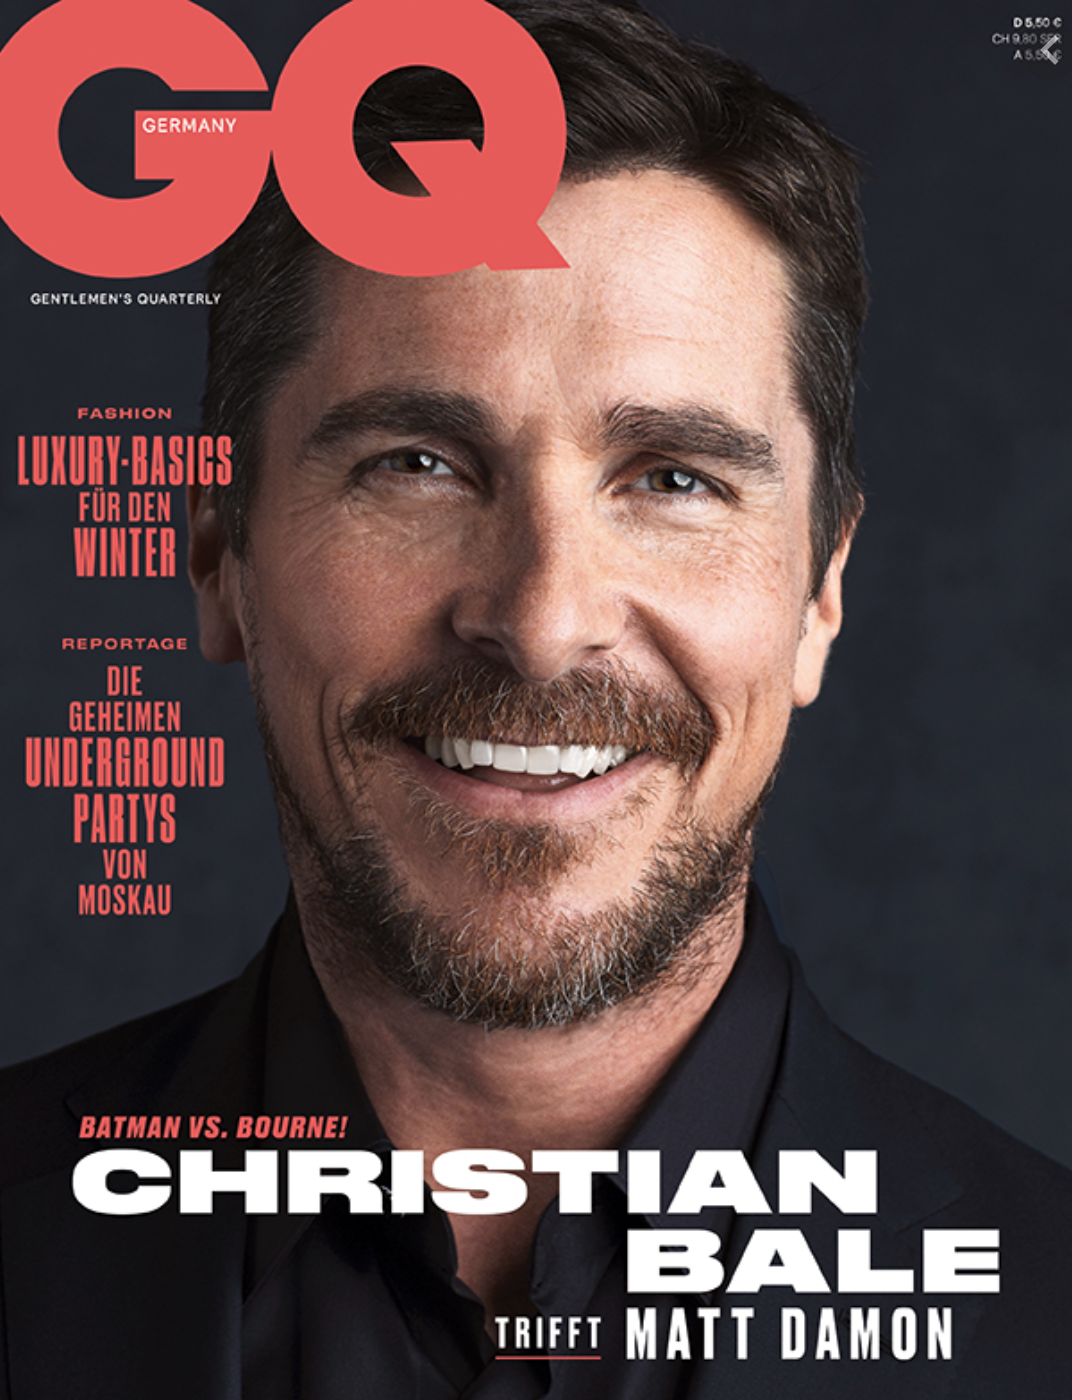 Cover story Matt Damon + Christian Bale GQeen Shot 2021-02-04 at 7.49.56 PM